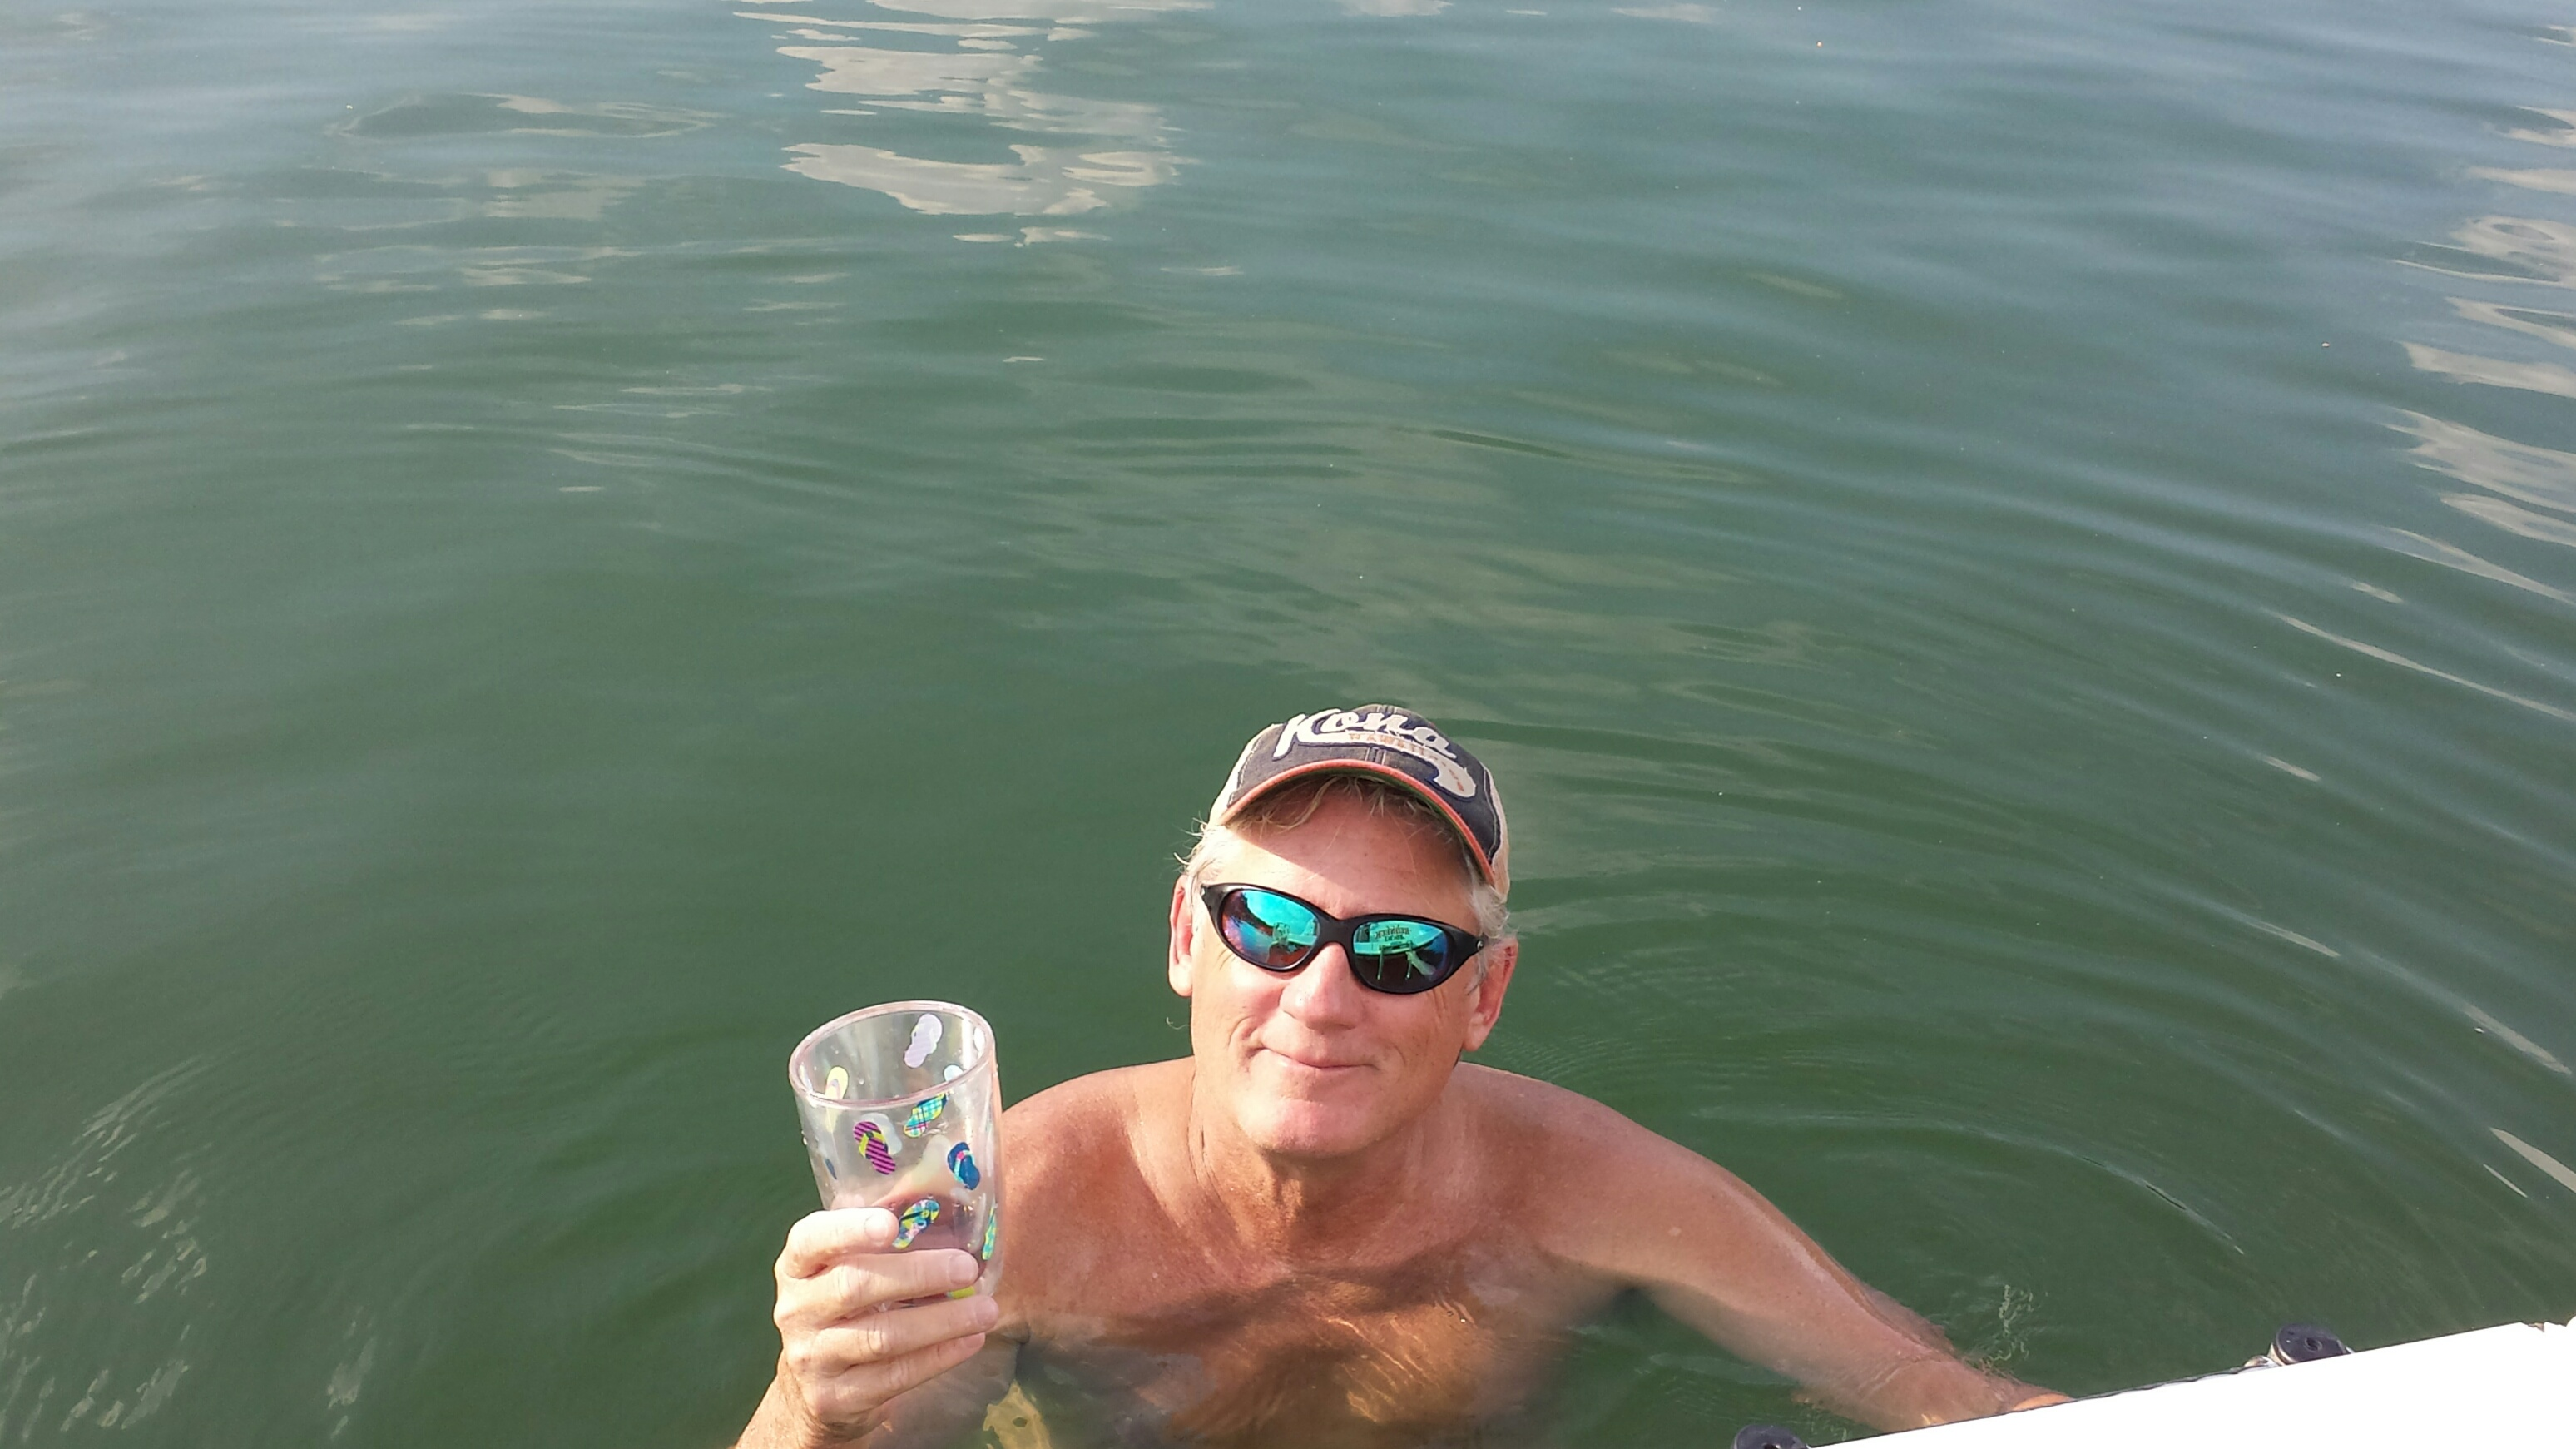 the Redneck Yacht Club Chapter (Nashville Tn.) would like to wish everyone a Happy Labor Day!